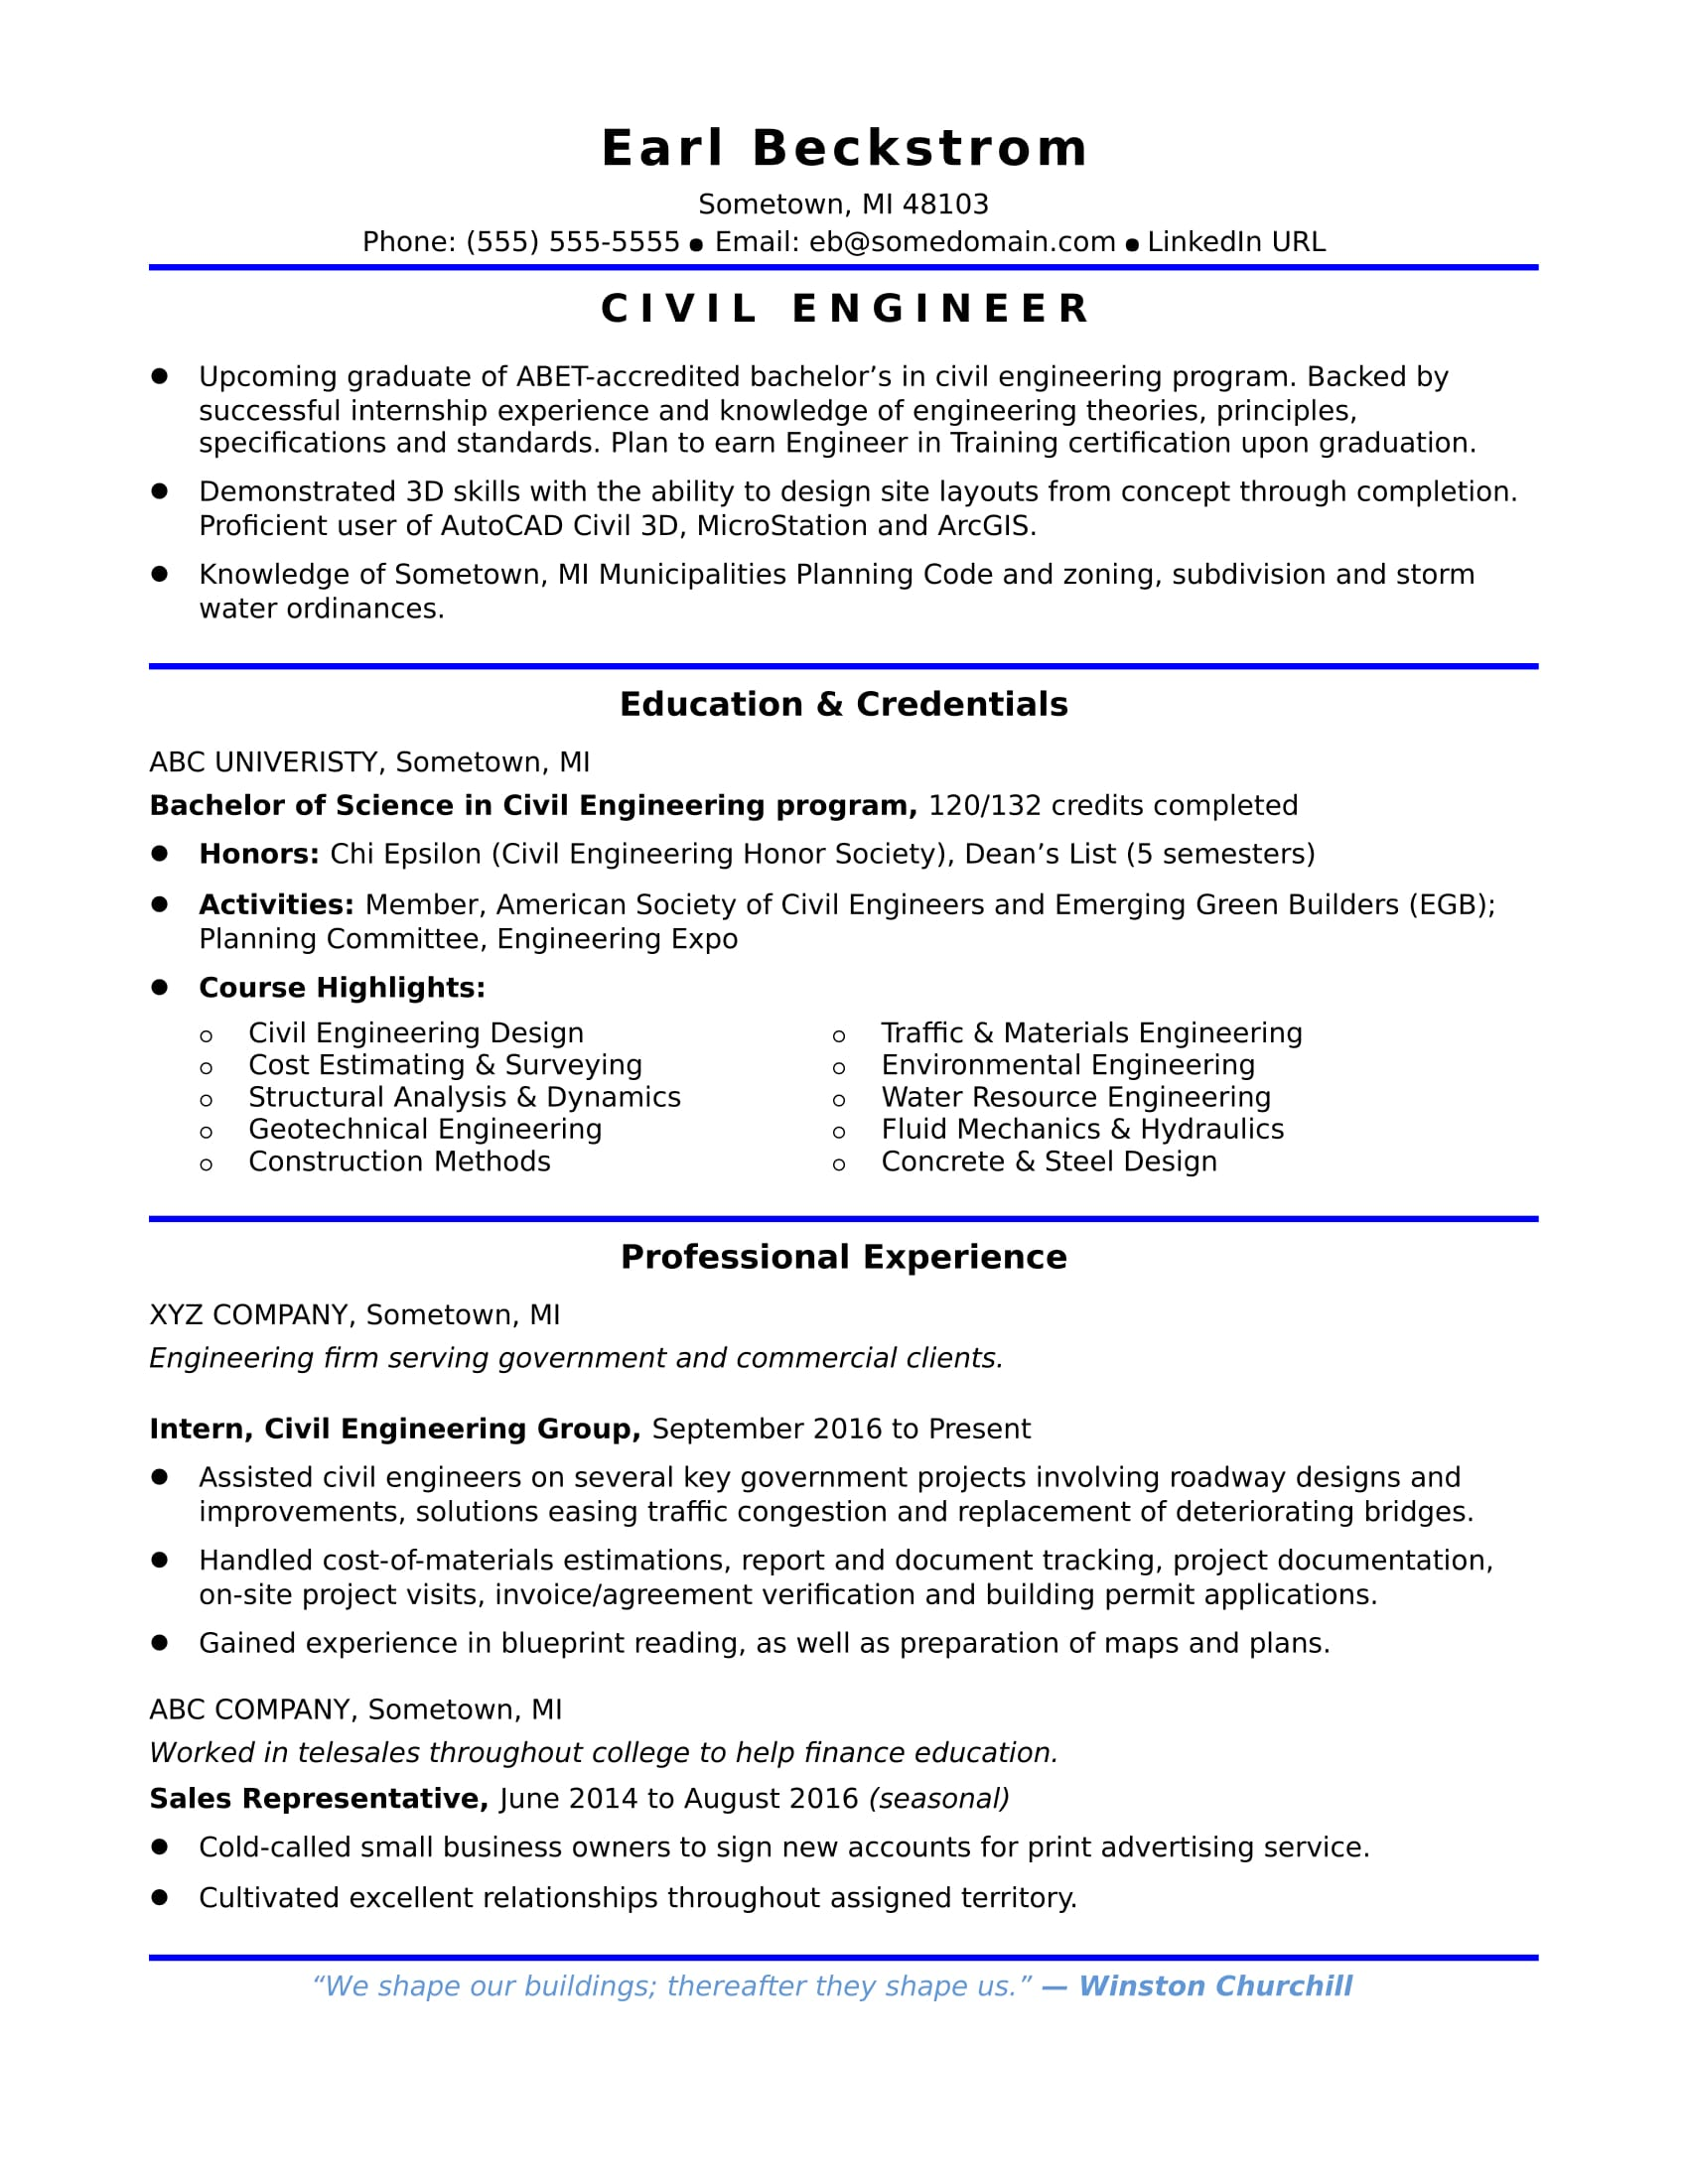 Sample Resume For An Entry Level Civil Engineer  Engineer Resume Sample